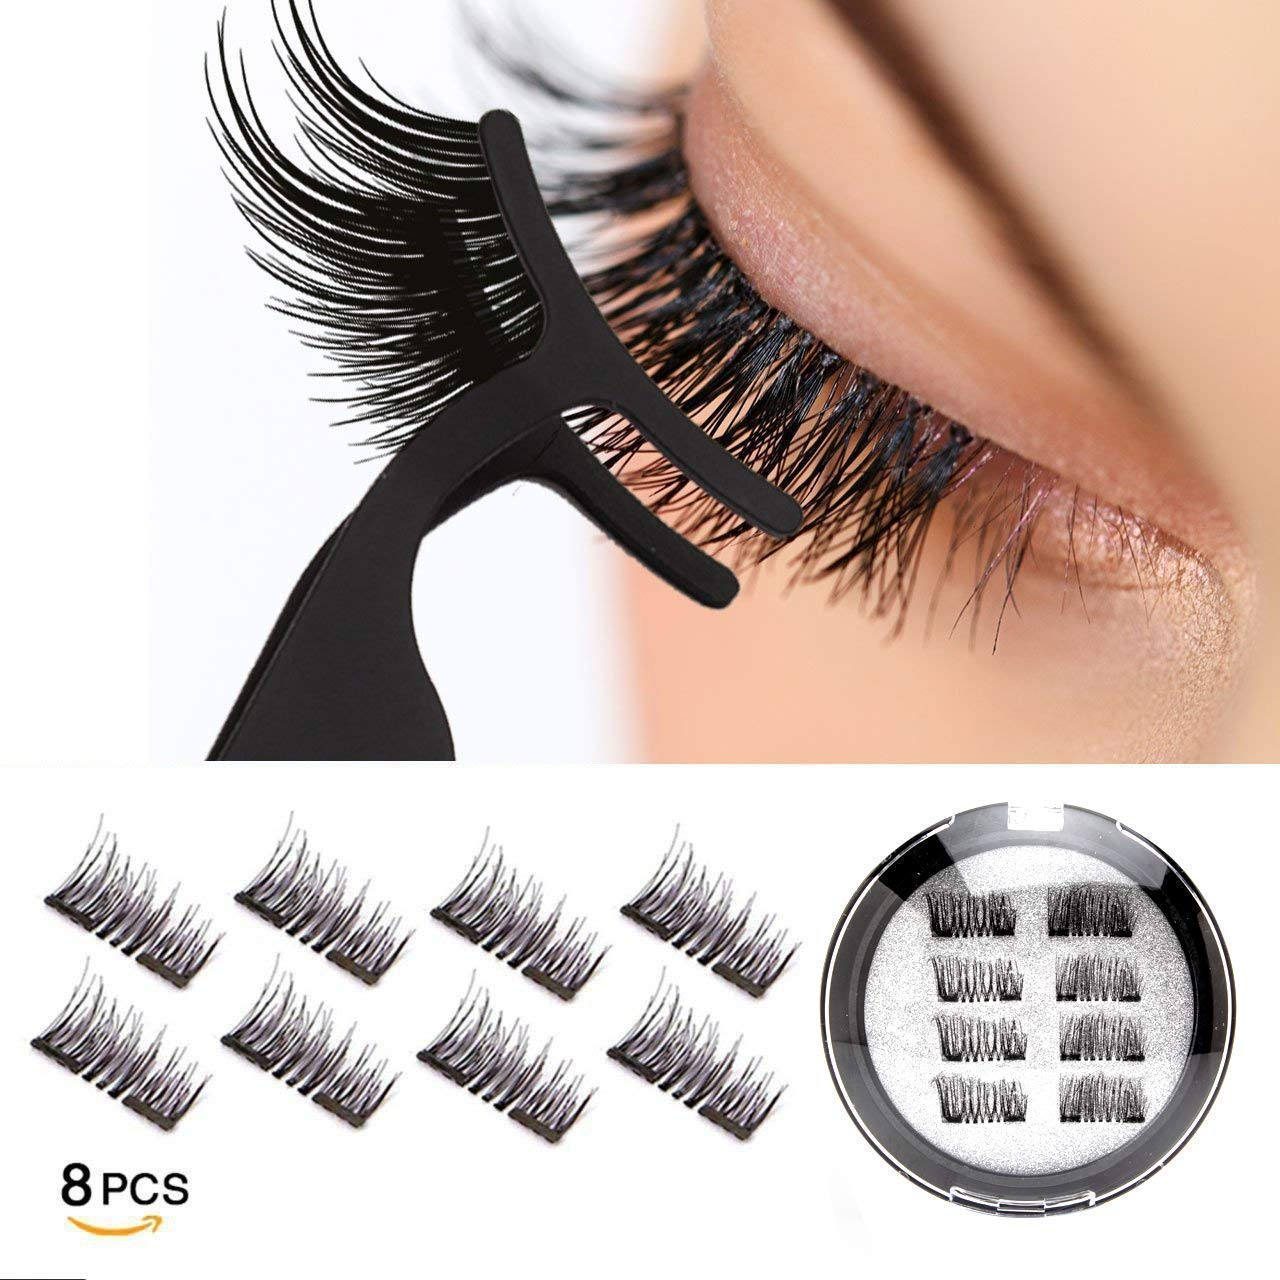 4660329423e Amazon.com : Vassoul Dual Magnetic Eyelashes, 0.2mm Ultra Thin Magnet,  Light weight & Easy to Wear, Best 3D Reusable Eyelashes with Applicator (8  PC with ...